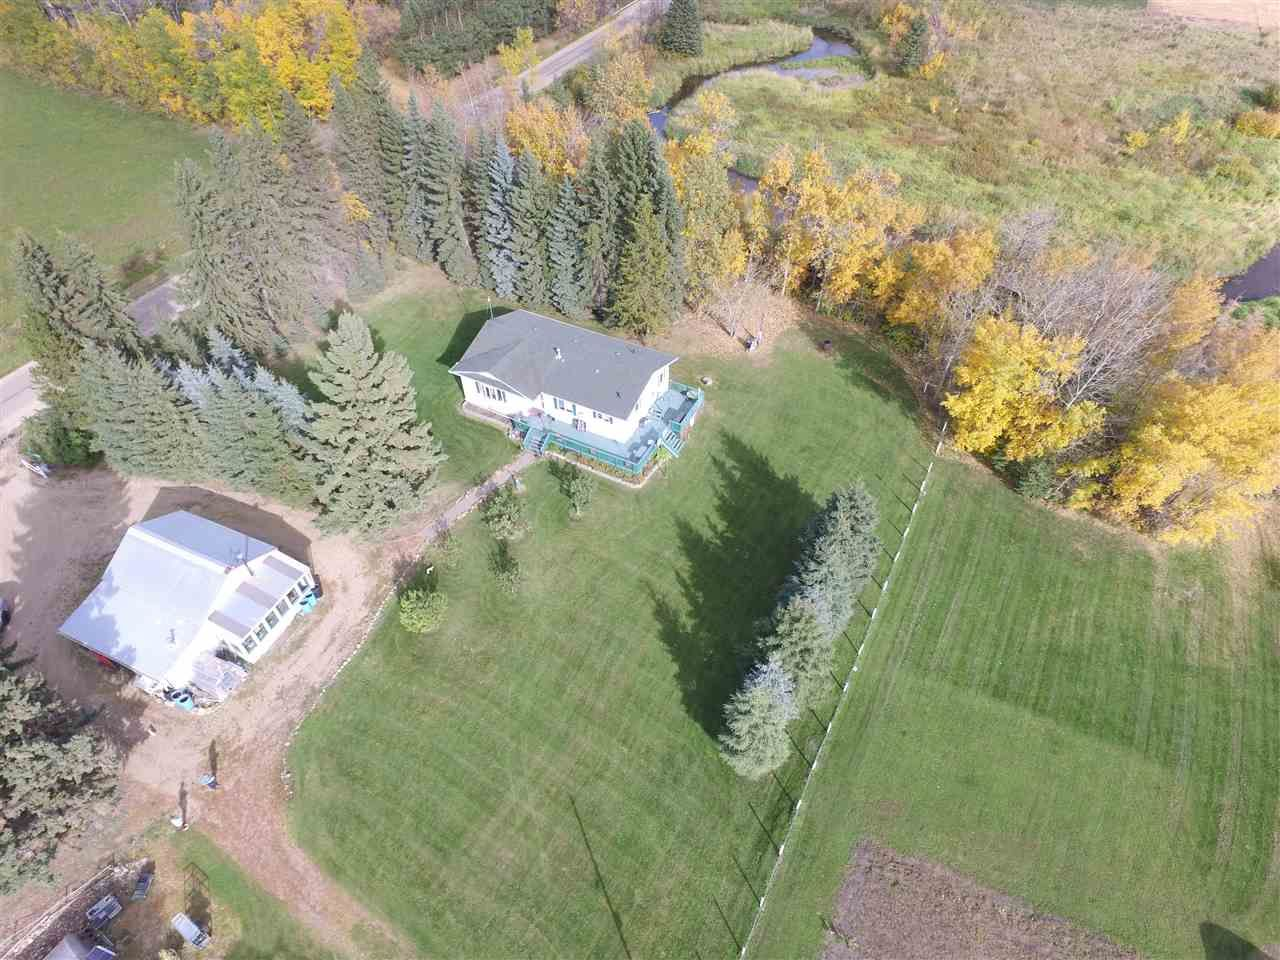 Photo 11: Photos: 265073 Twp Rd 472A: Rural Wetaskiwin County House for sale : MLS®# E4216435